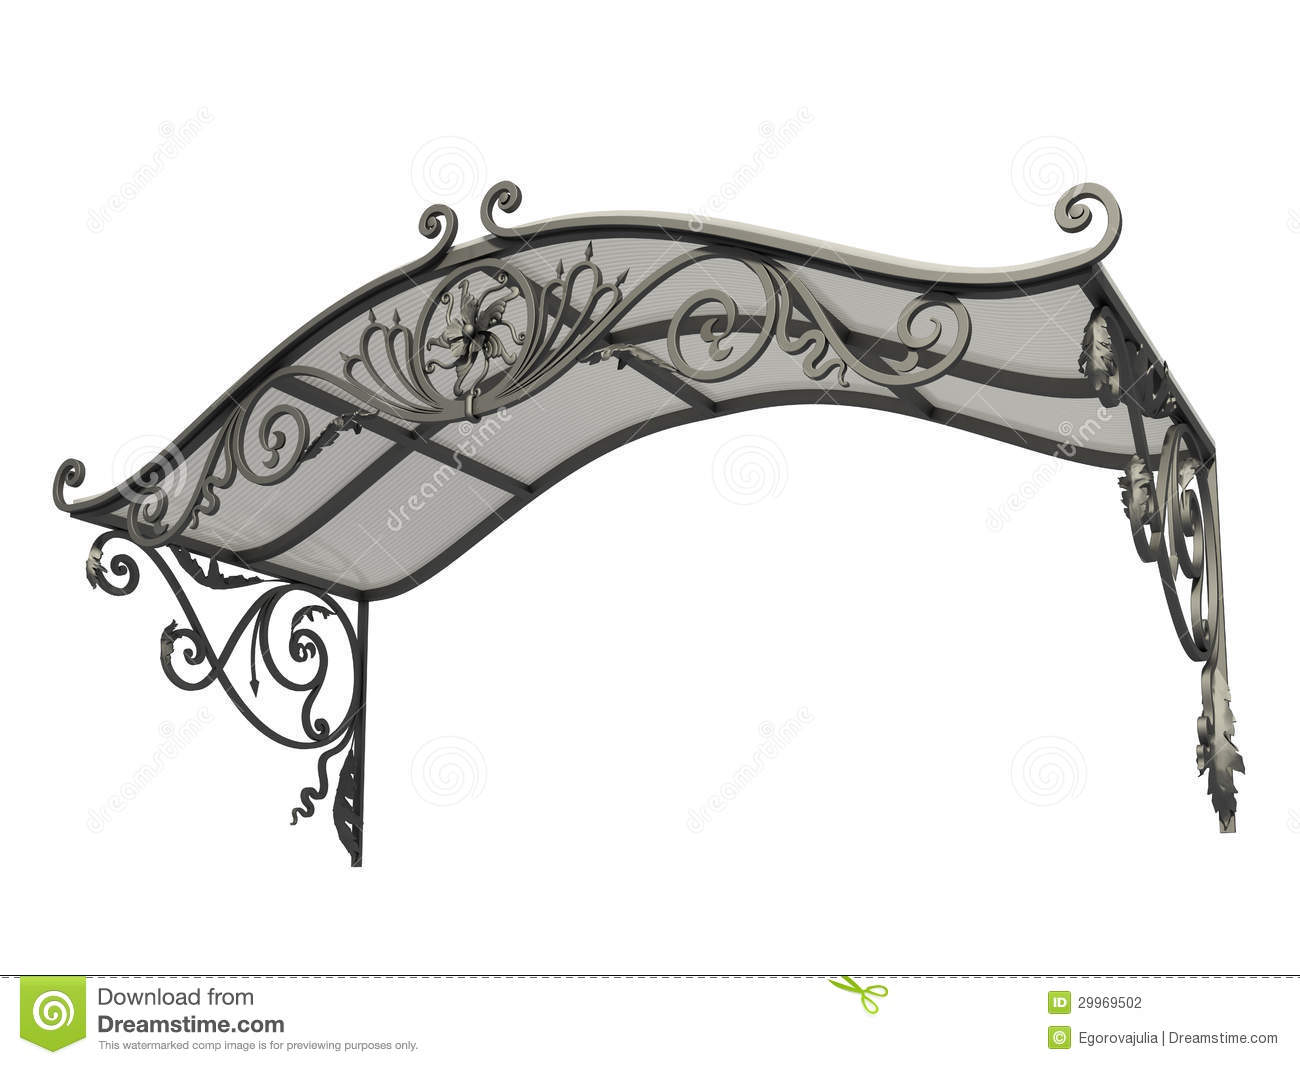 Wrought iron canopy stock photography image